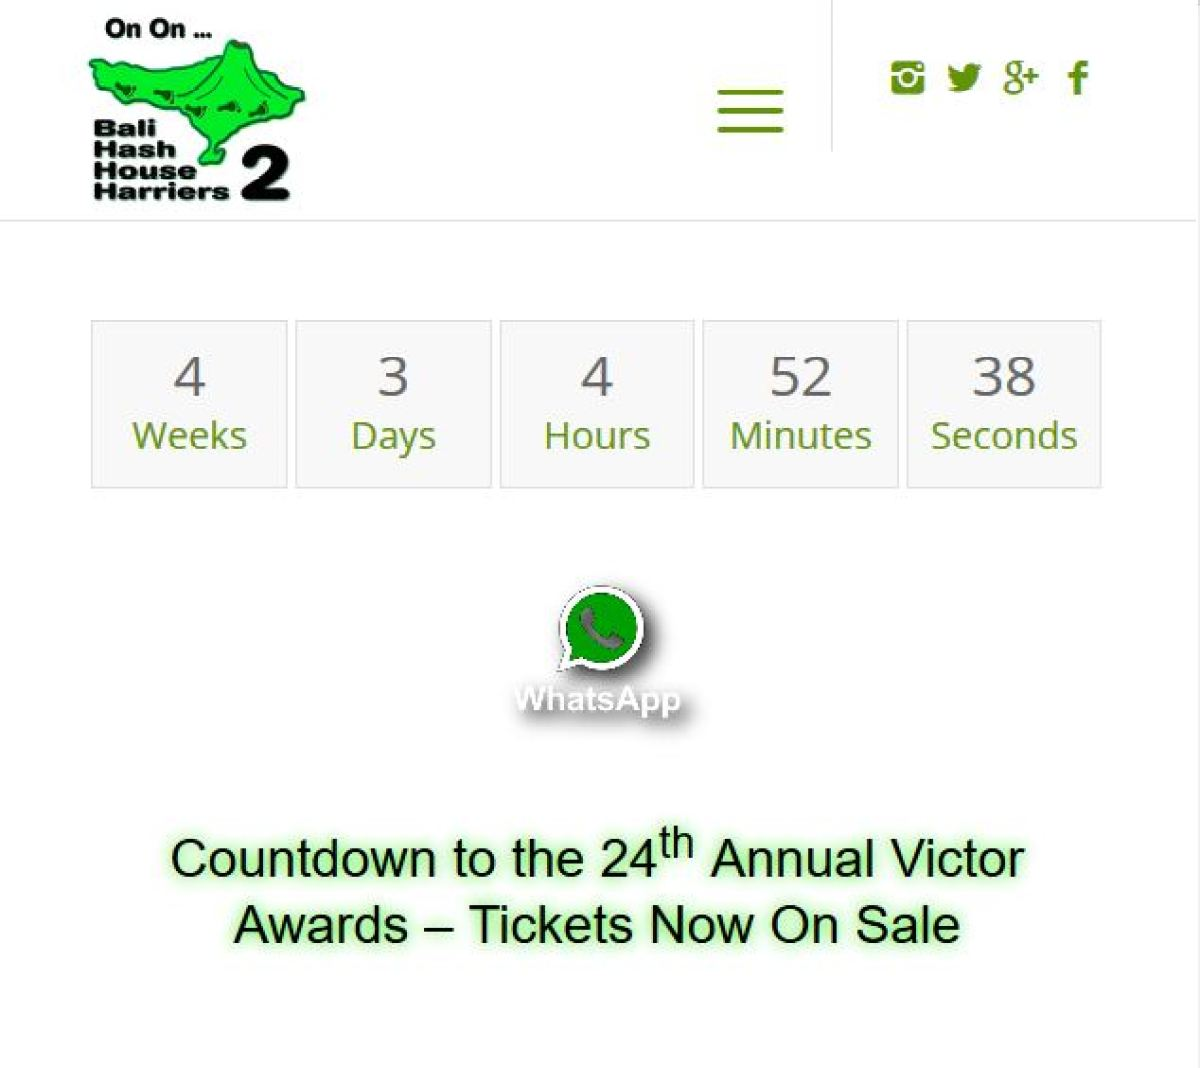 Countdown to the 24th Annual Victor Awards